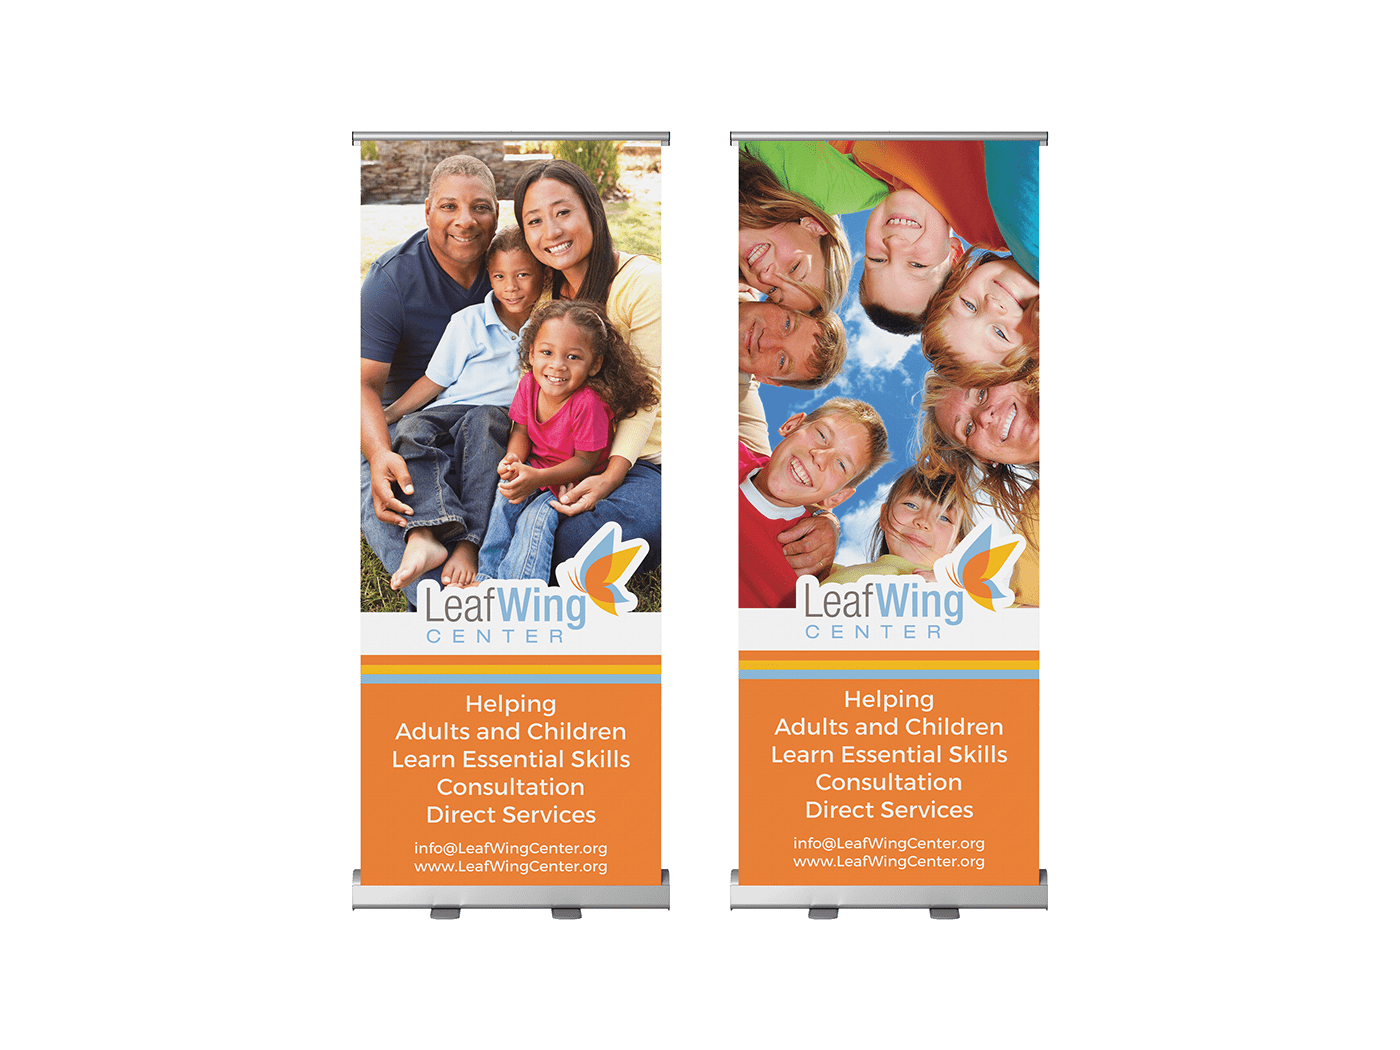 LeafWing Center Tradeshow Retractable Banners